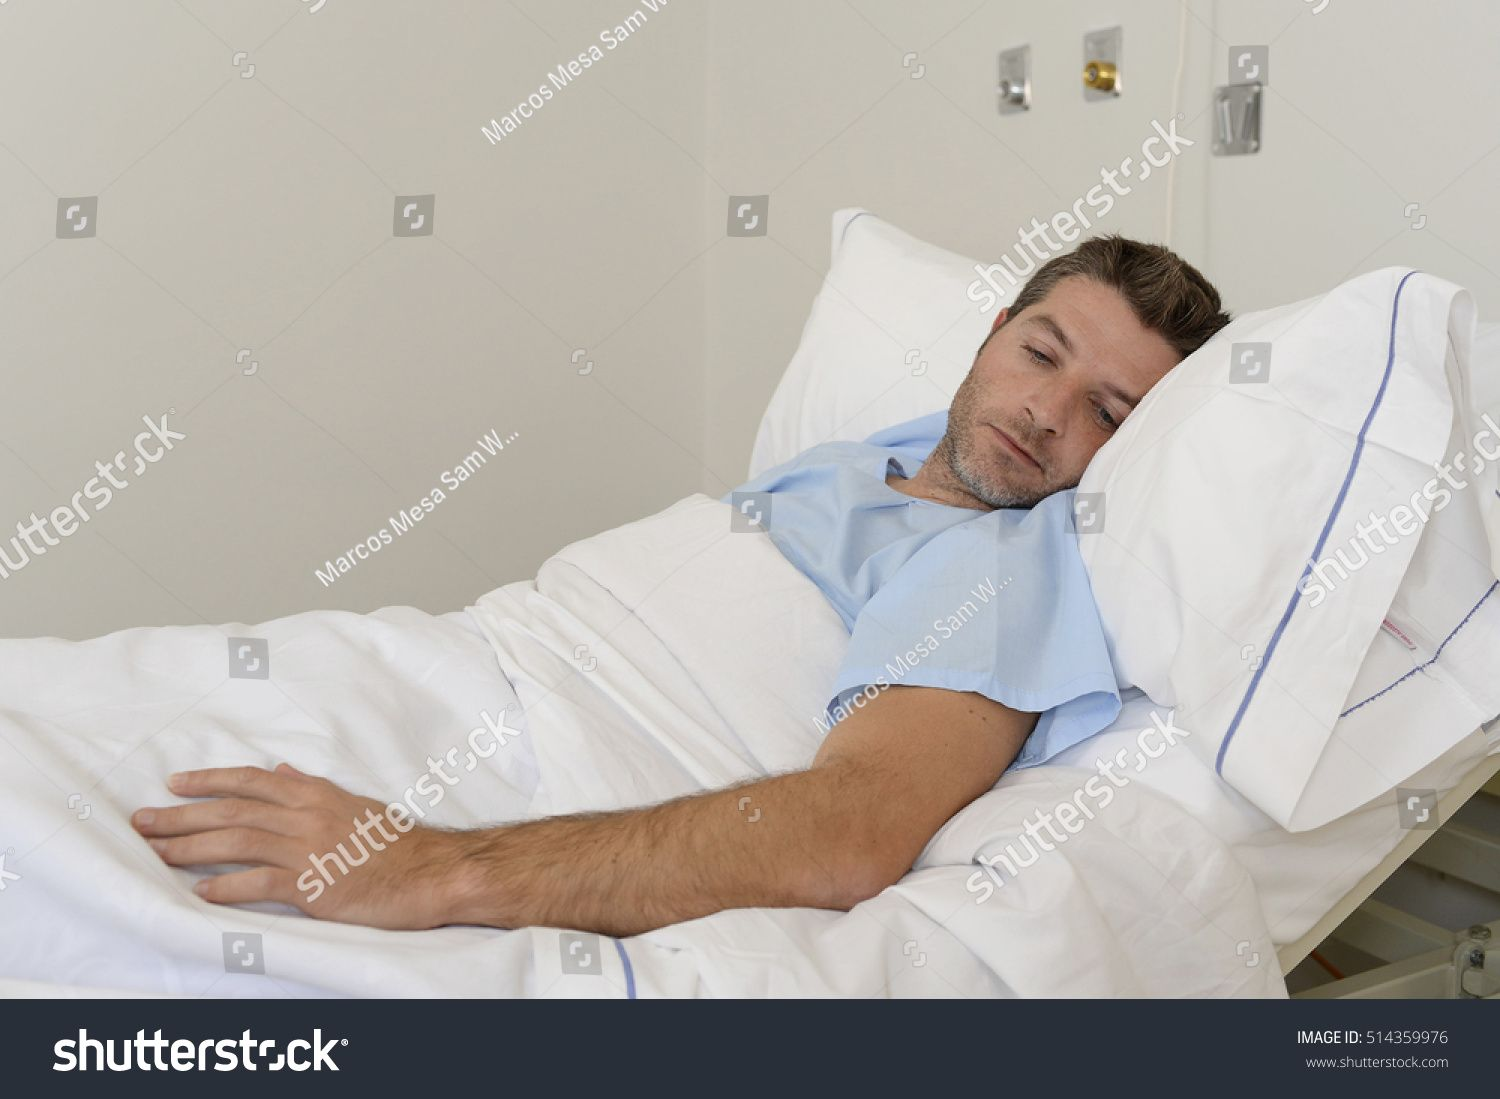 Young Patient Man Lying Hospital Bed Stock Photo 514359976